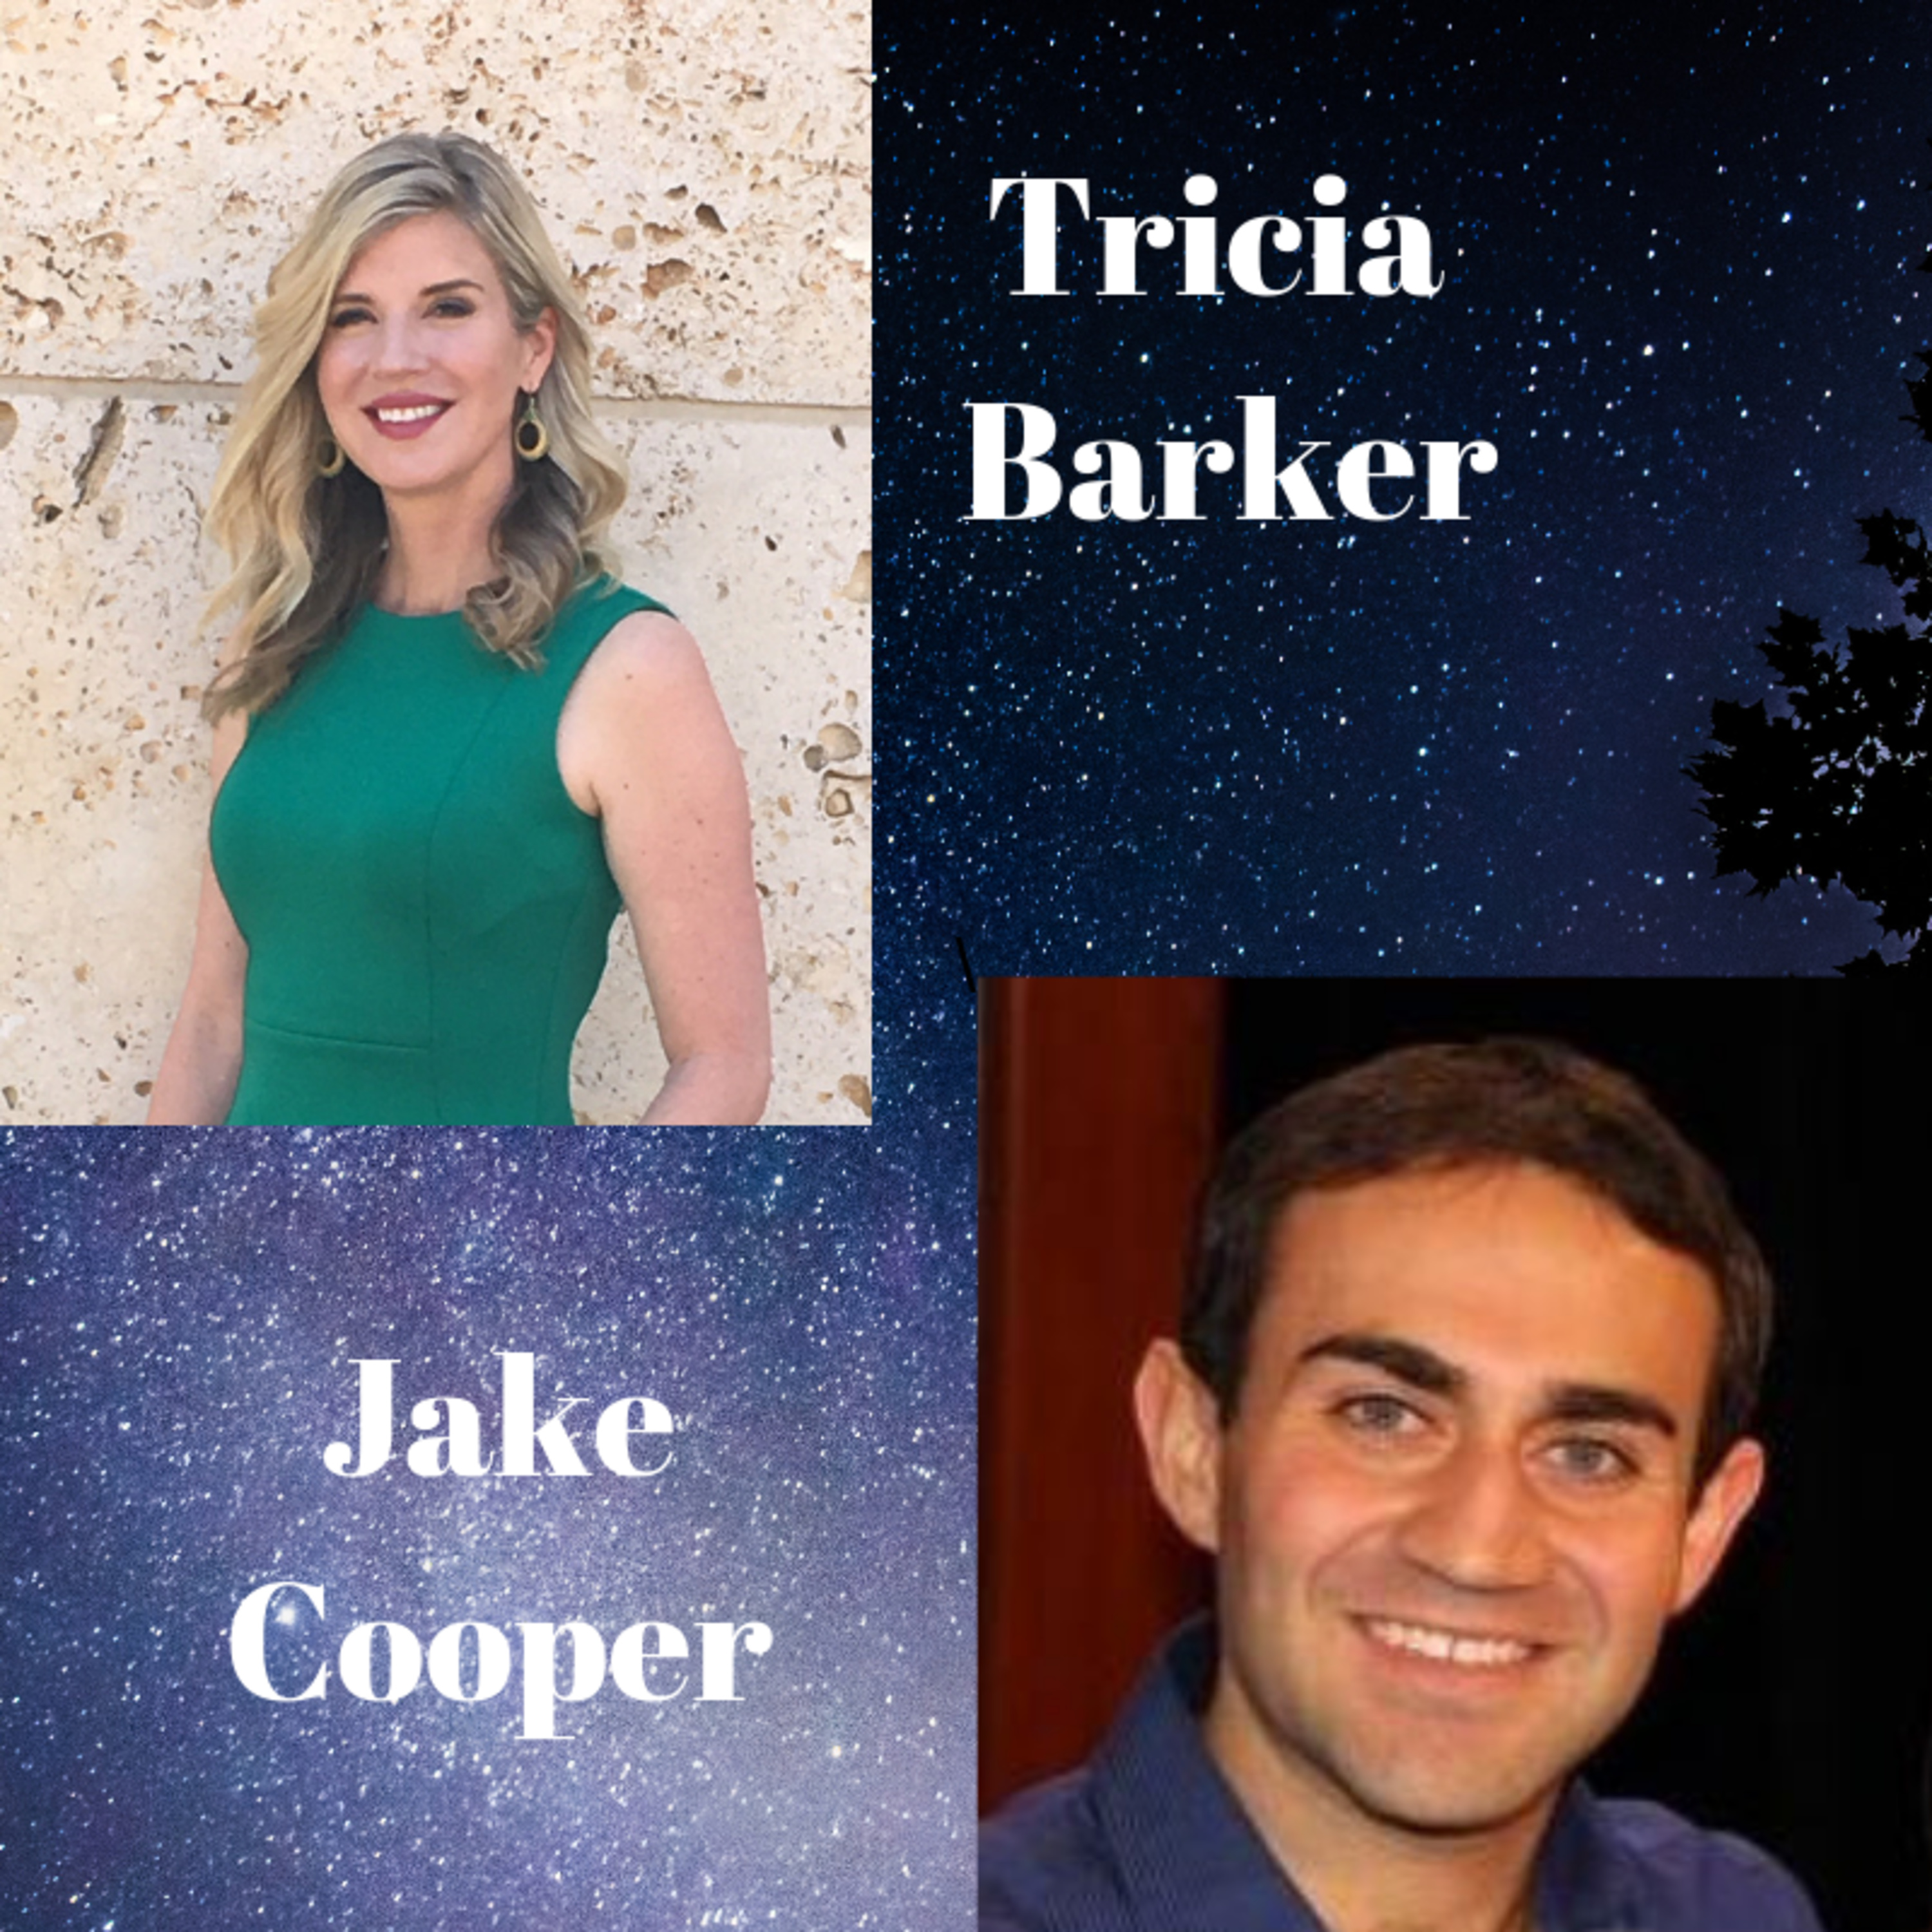 S2 Ep. 16 Jake Cooper ---Tricia Barker's Conversations with Near-Death Experiencers